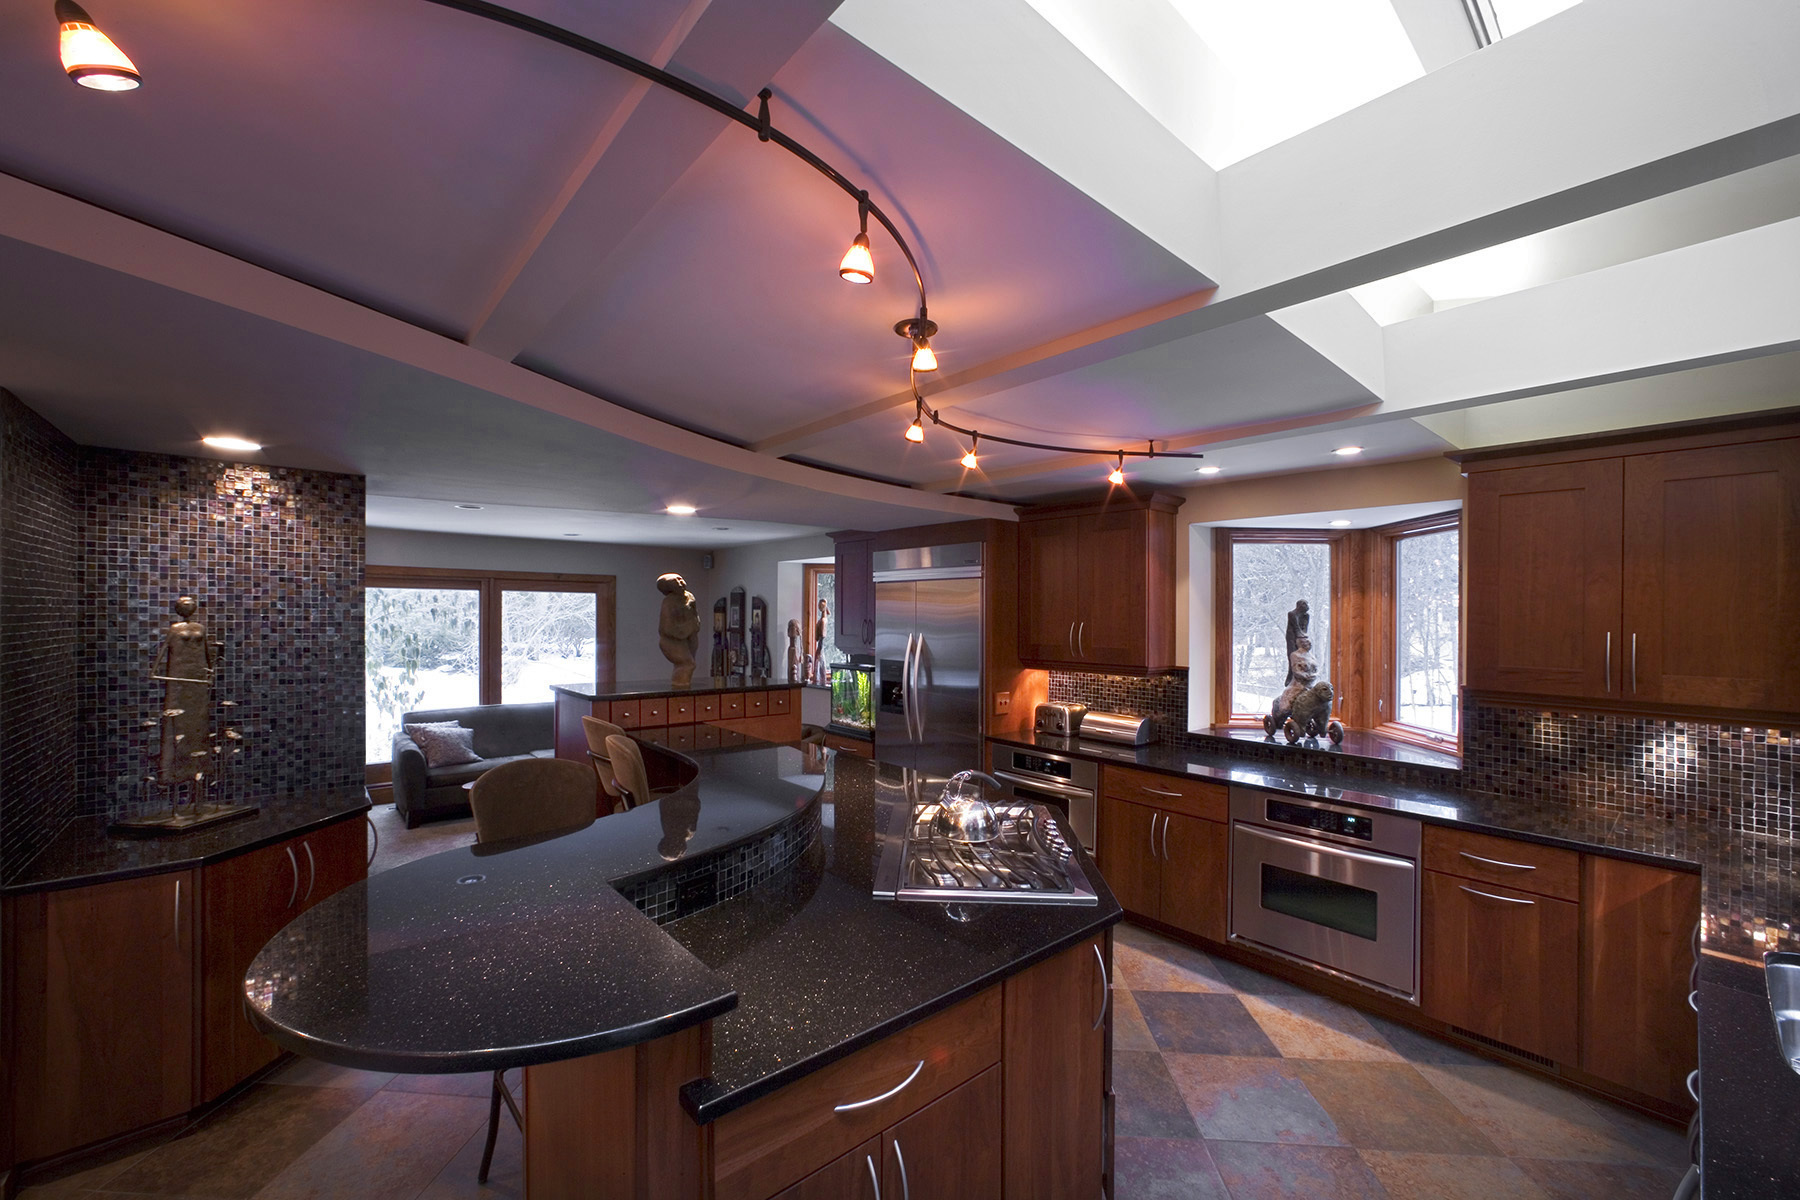 Cincinnati residence kitchen featuring Woodharbor Cabinetry